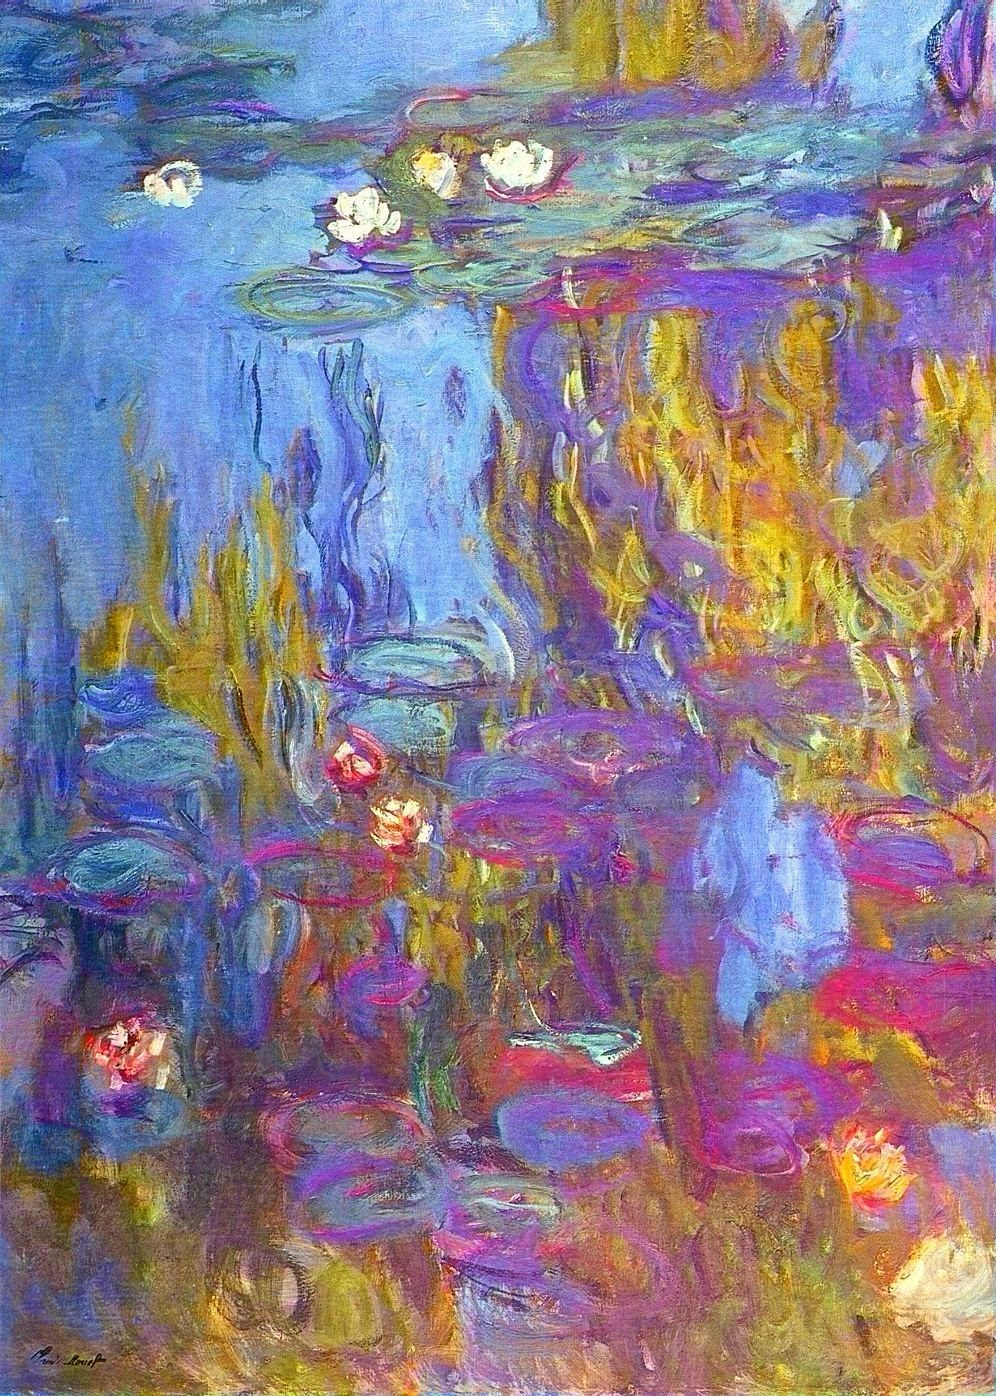 Art artists claude monet part 23 1897 1922 water lilies for Monet paintings images